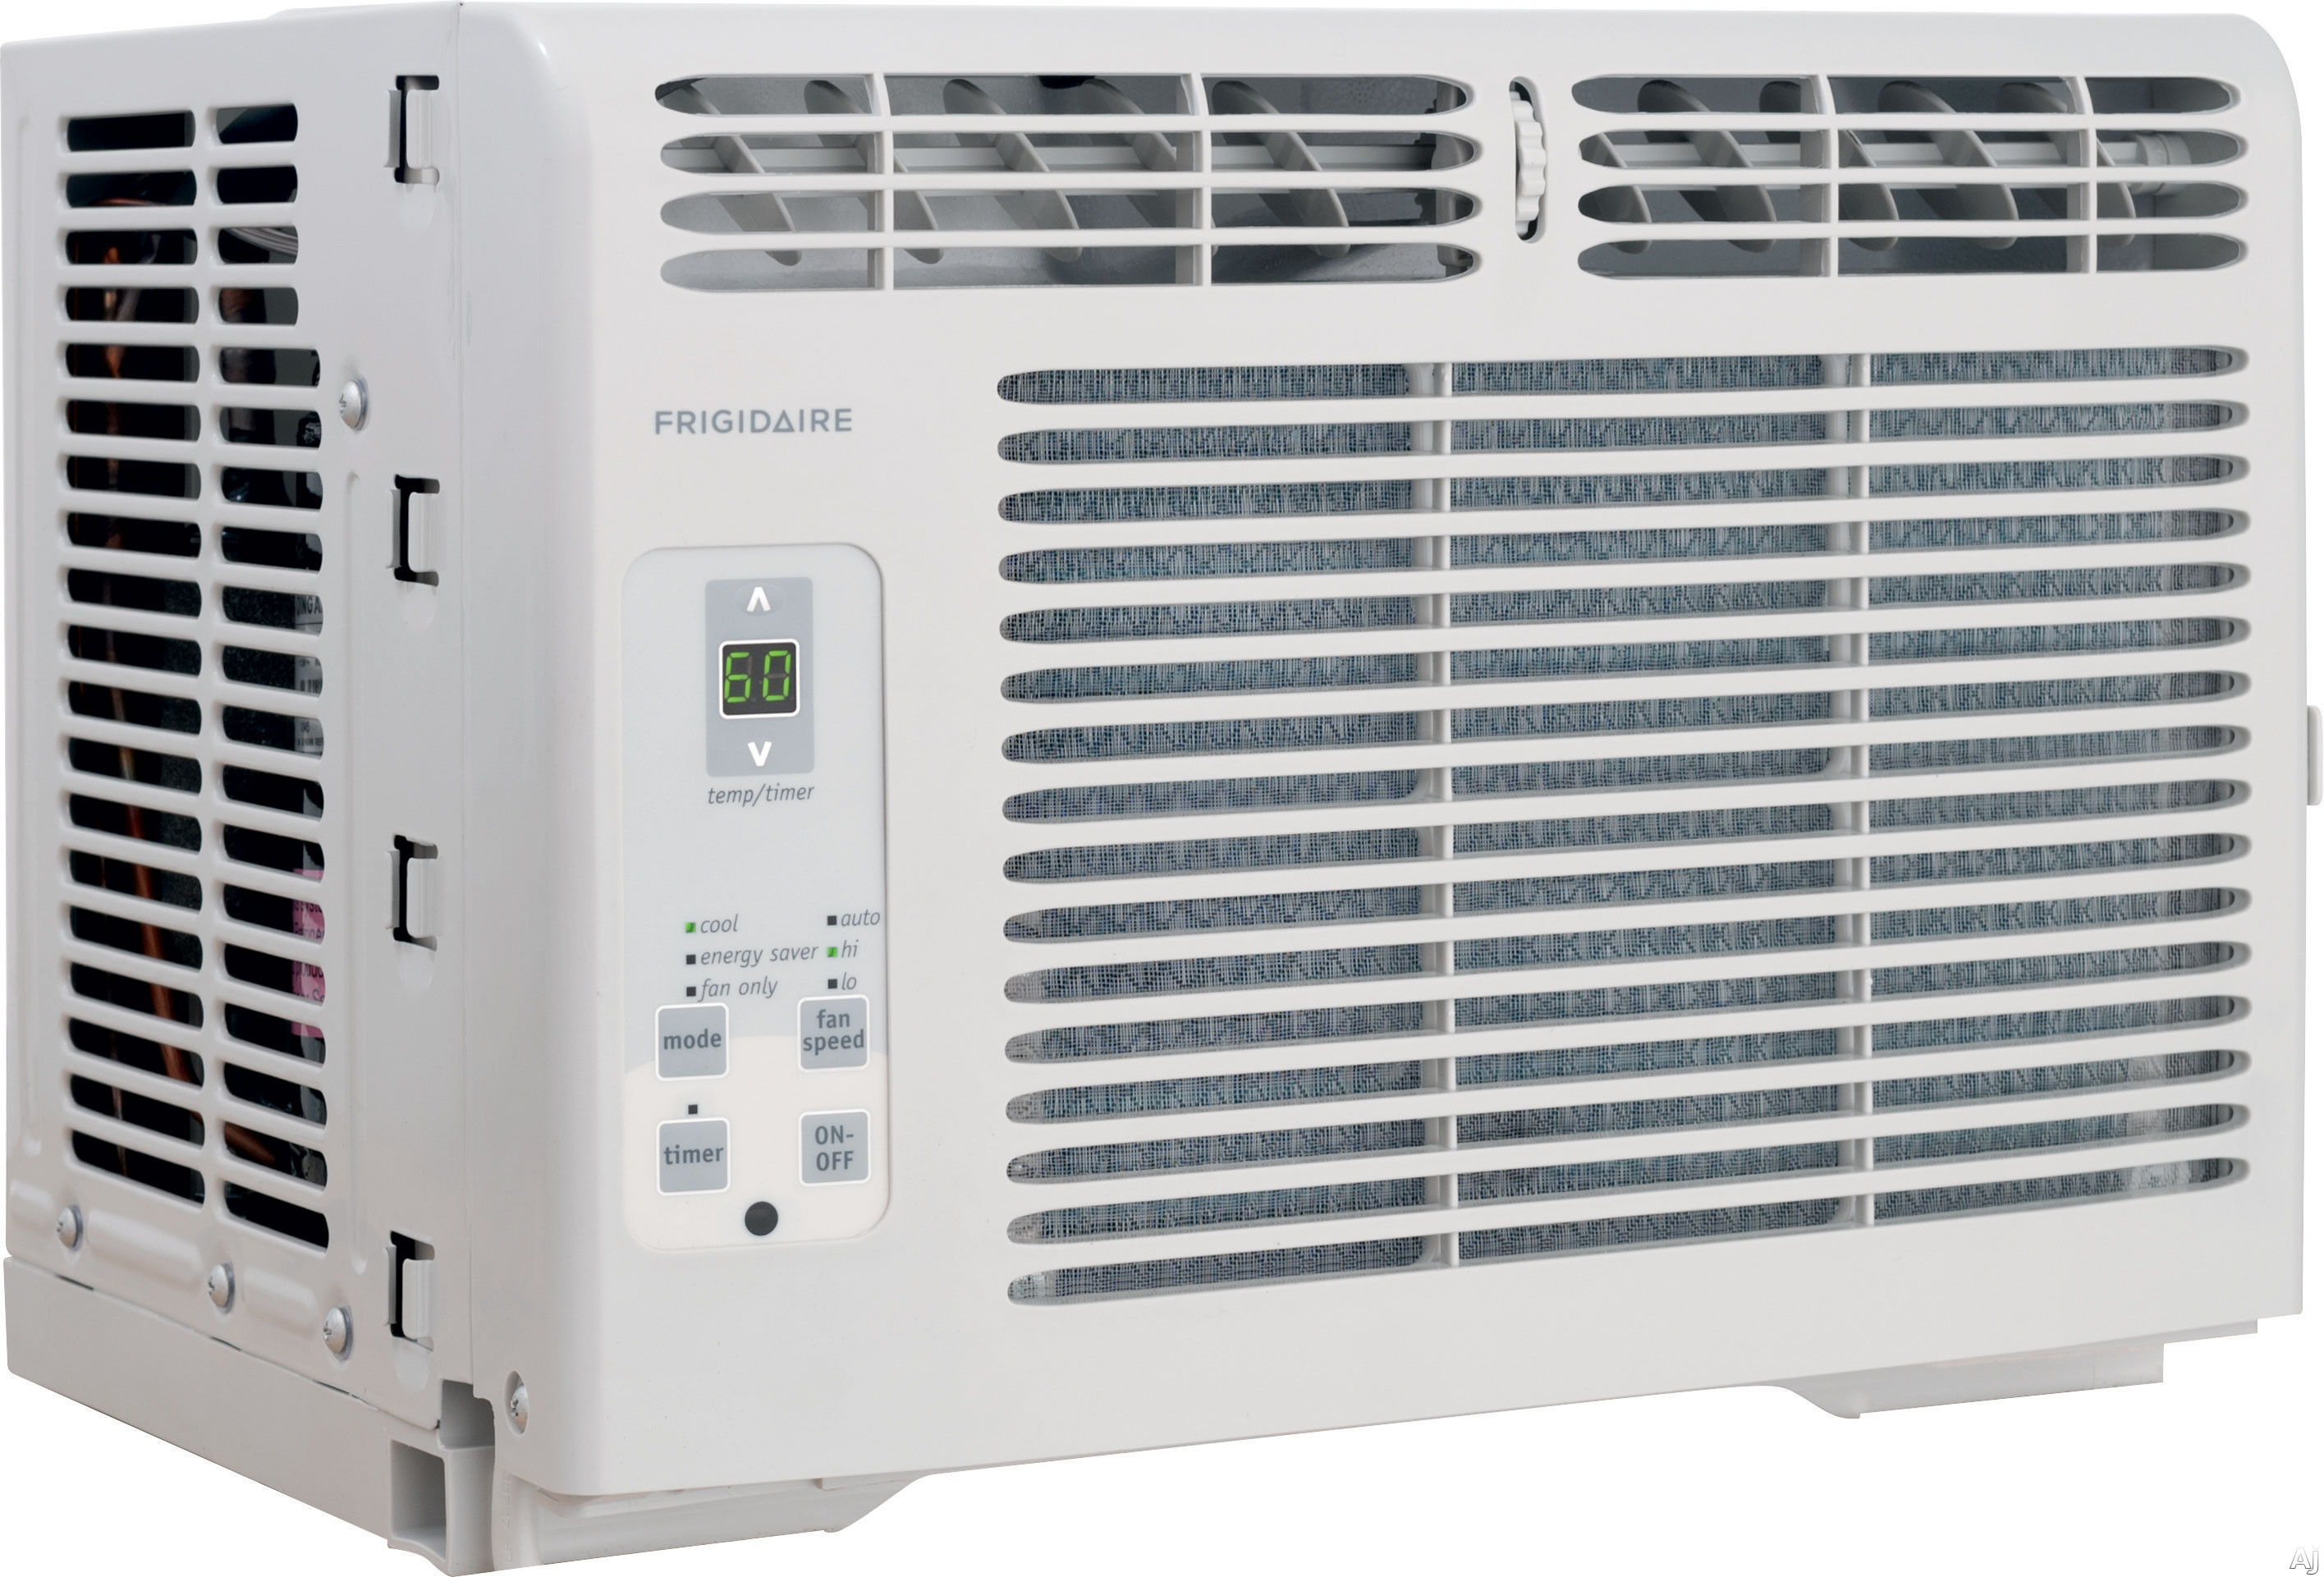 Home > Air Conditioners > Room Air Conditioners > FFRA0522Q1 #5D724B